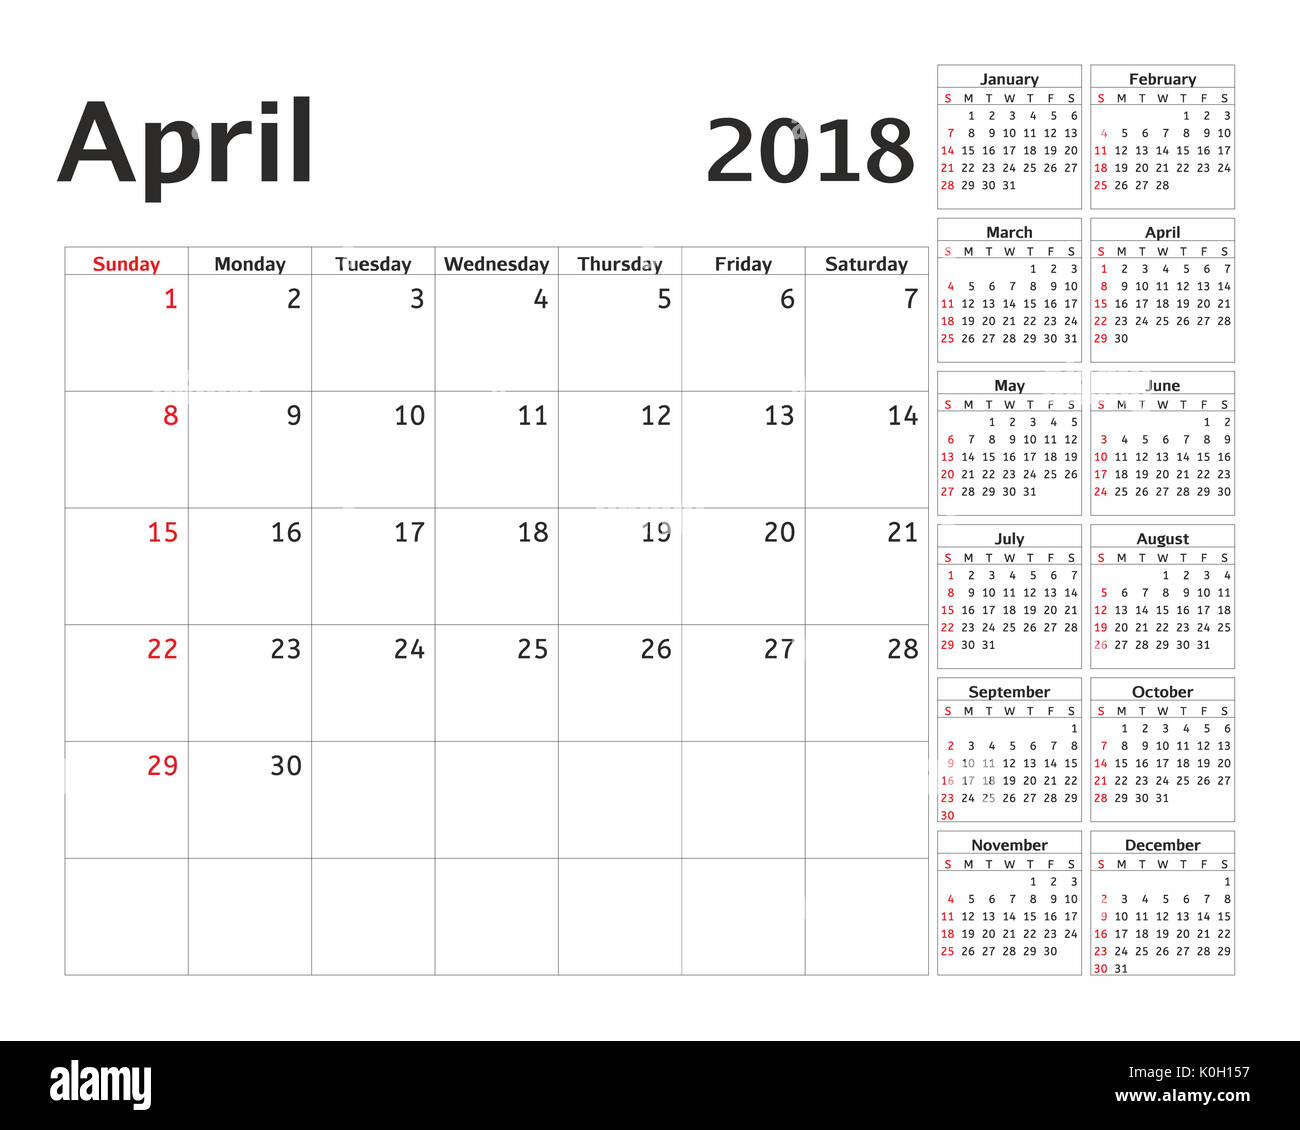 Simple Calendar Planner For 2018 Year Planning Week Design April Template Set Of 12 Months Starts Sunday